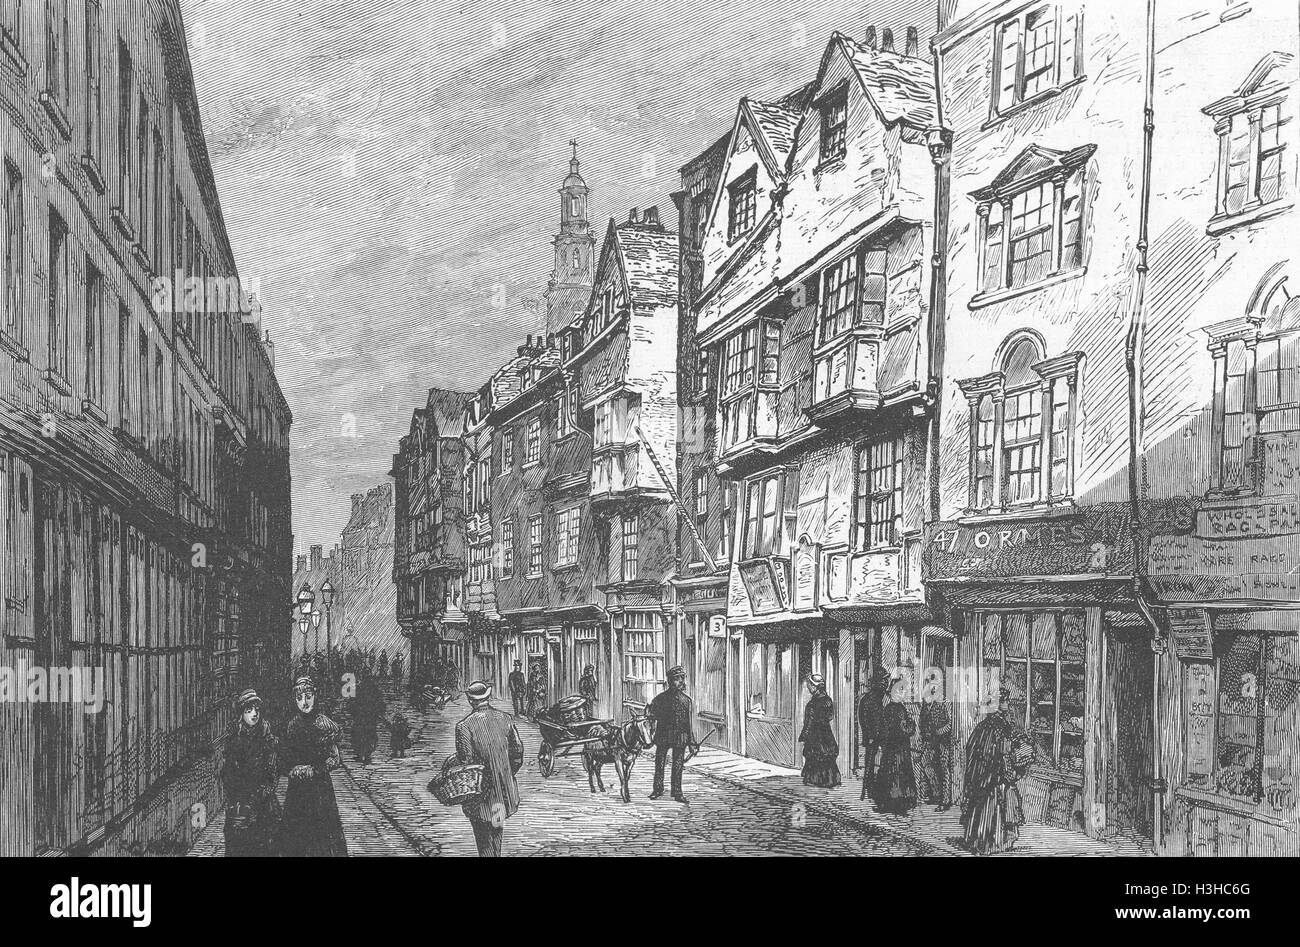 LONDON Houses, Wych St(Aldwych), demolished 1884. The Graphic - Stock Image